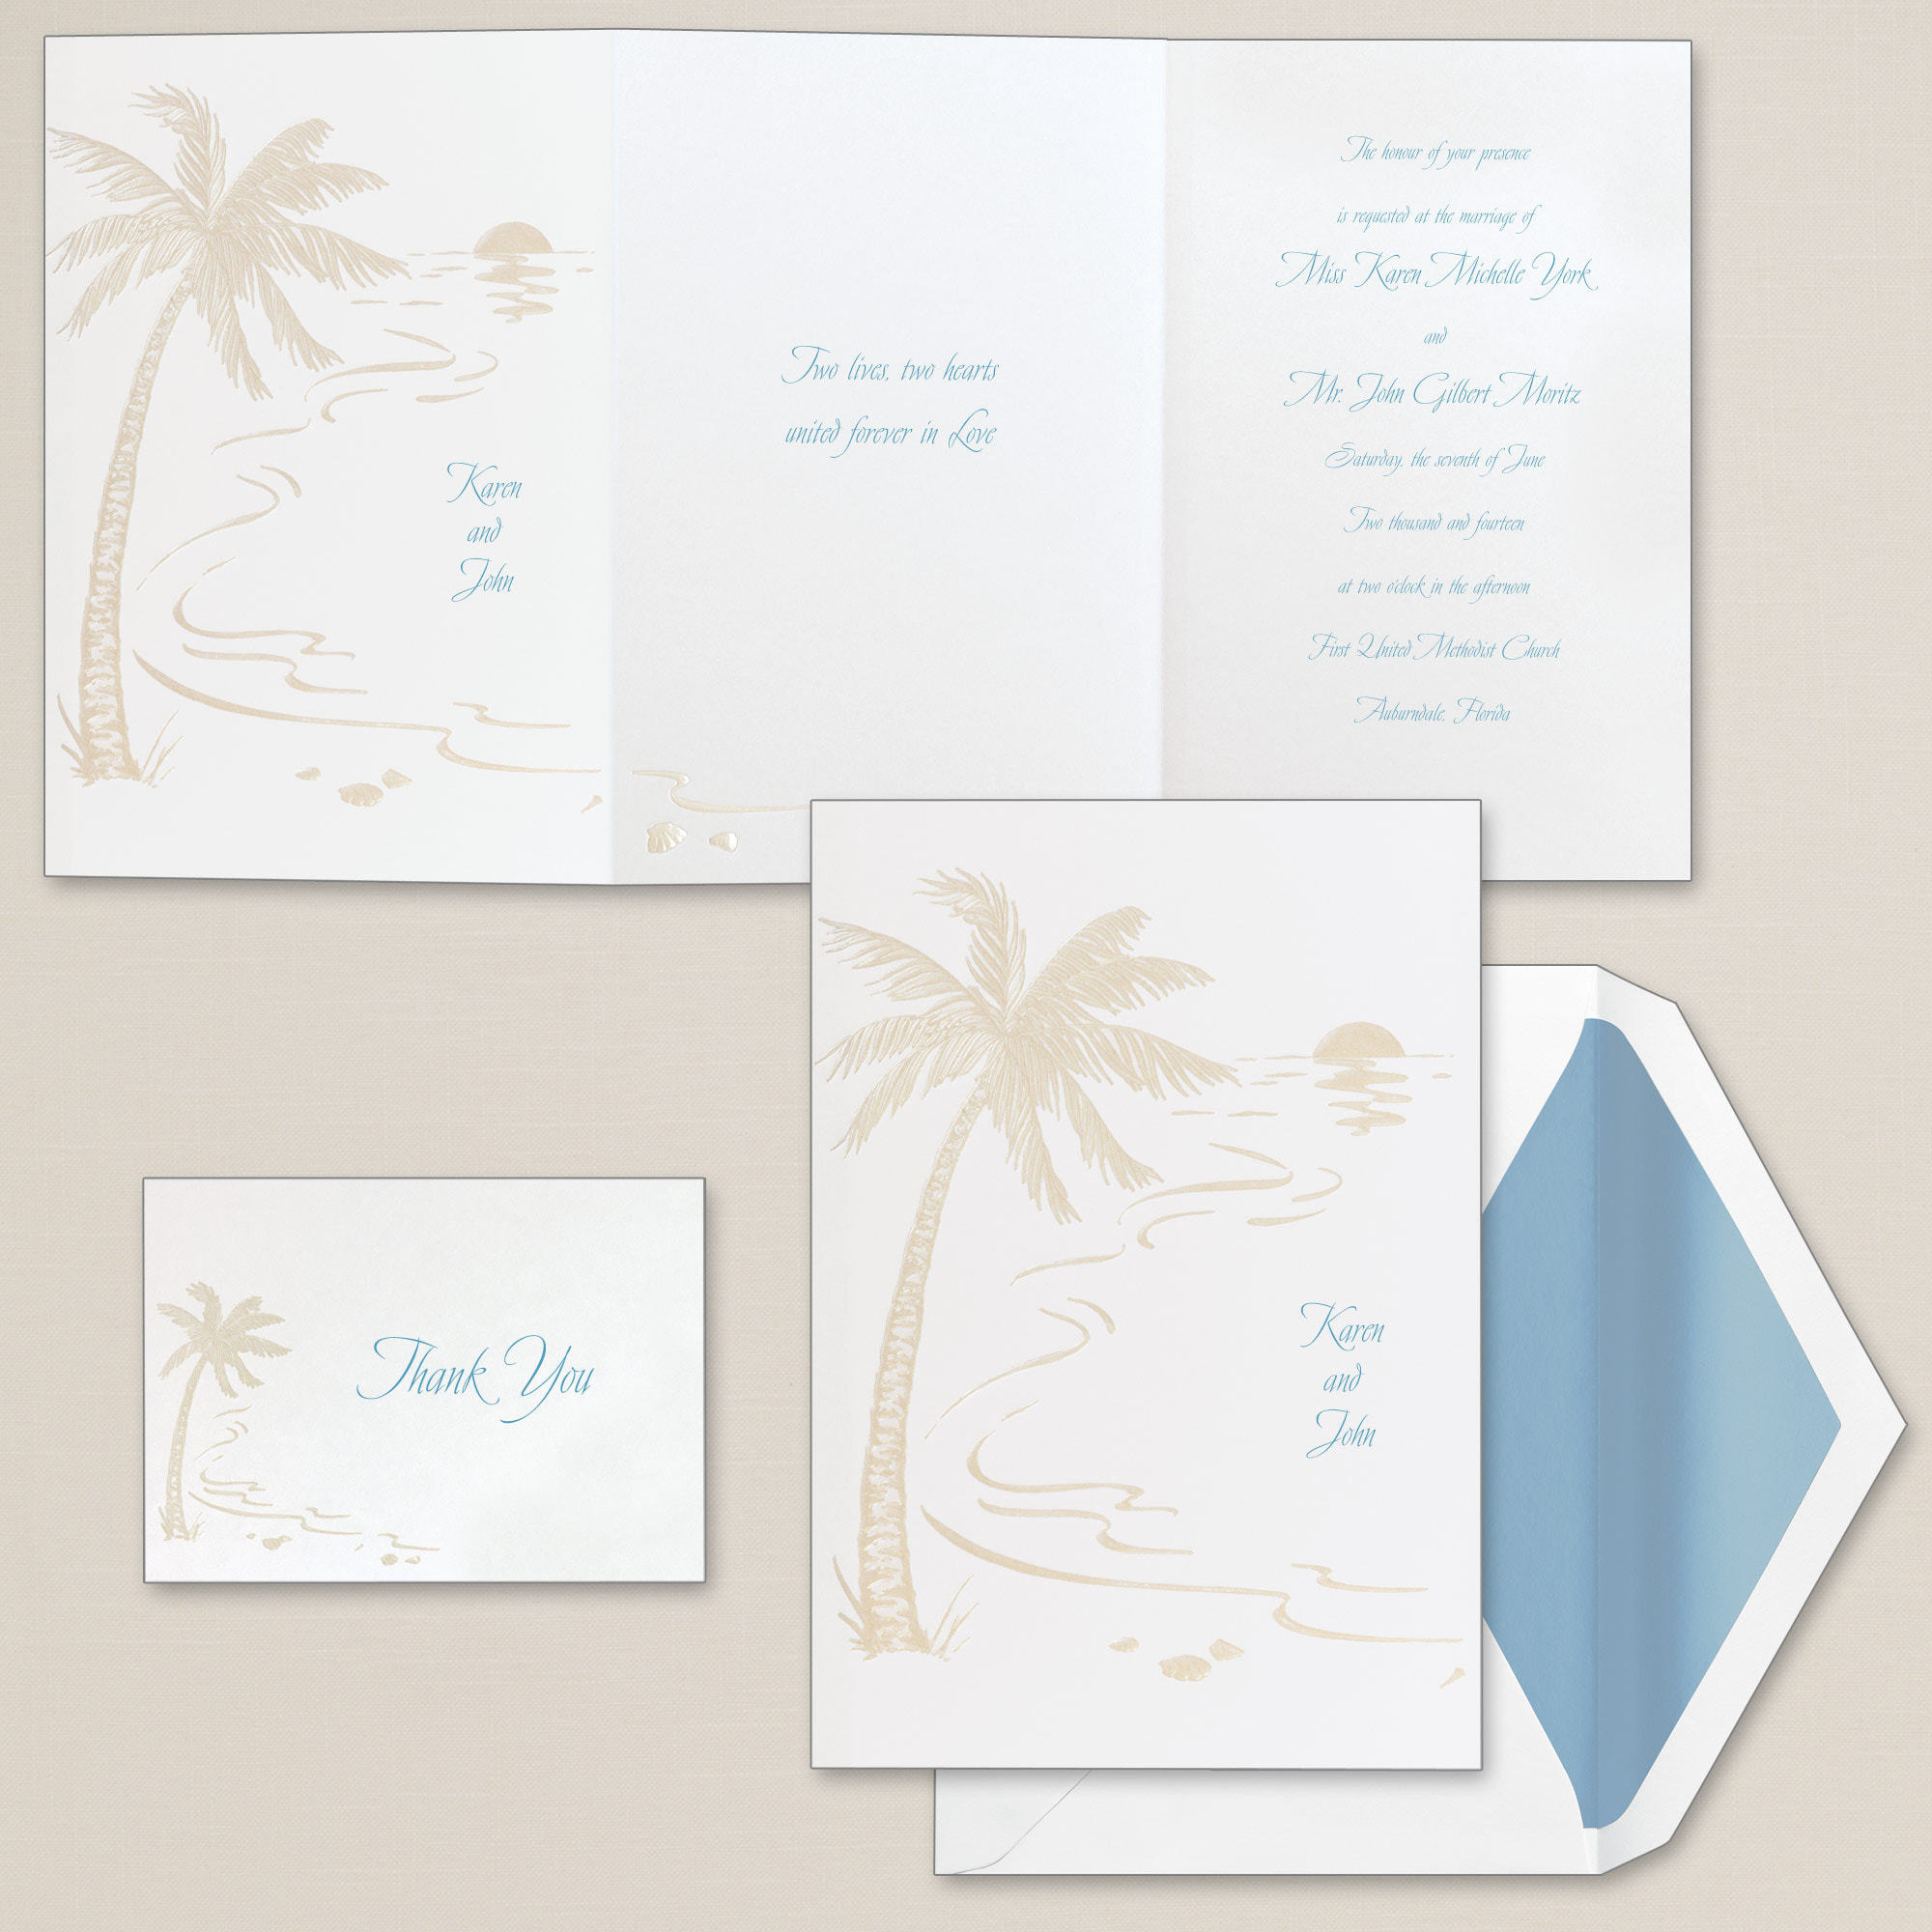 Wedding Invitations Under 50 Dollars Fashion Dresses